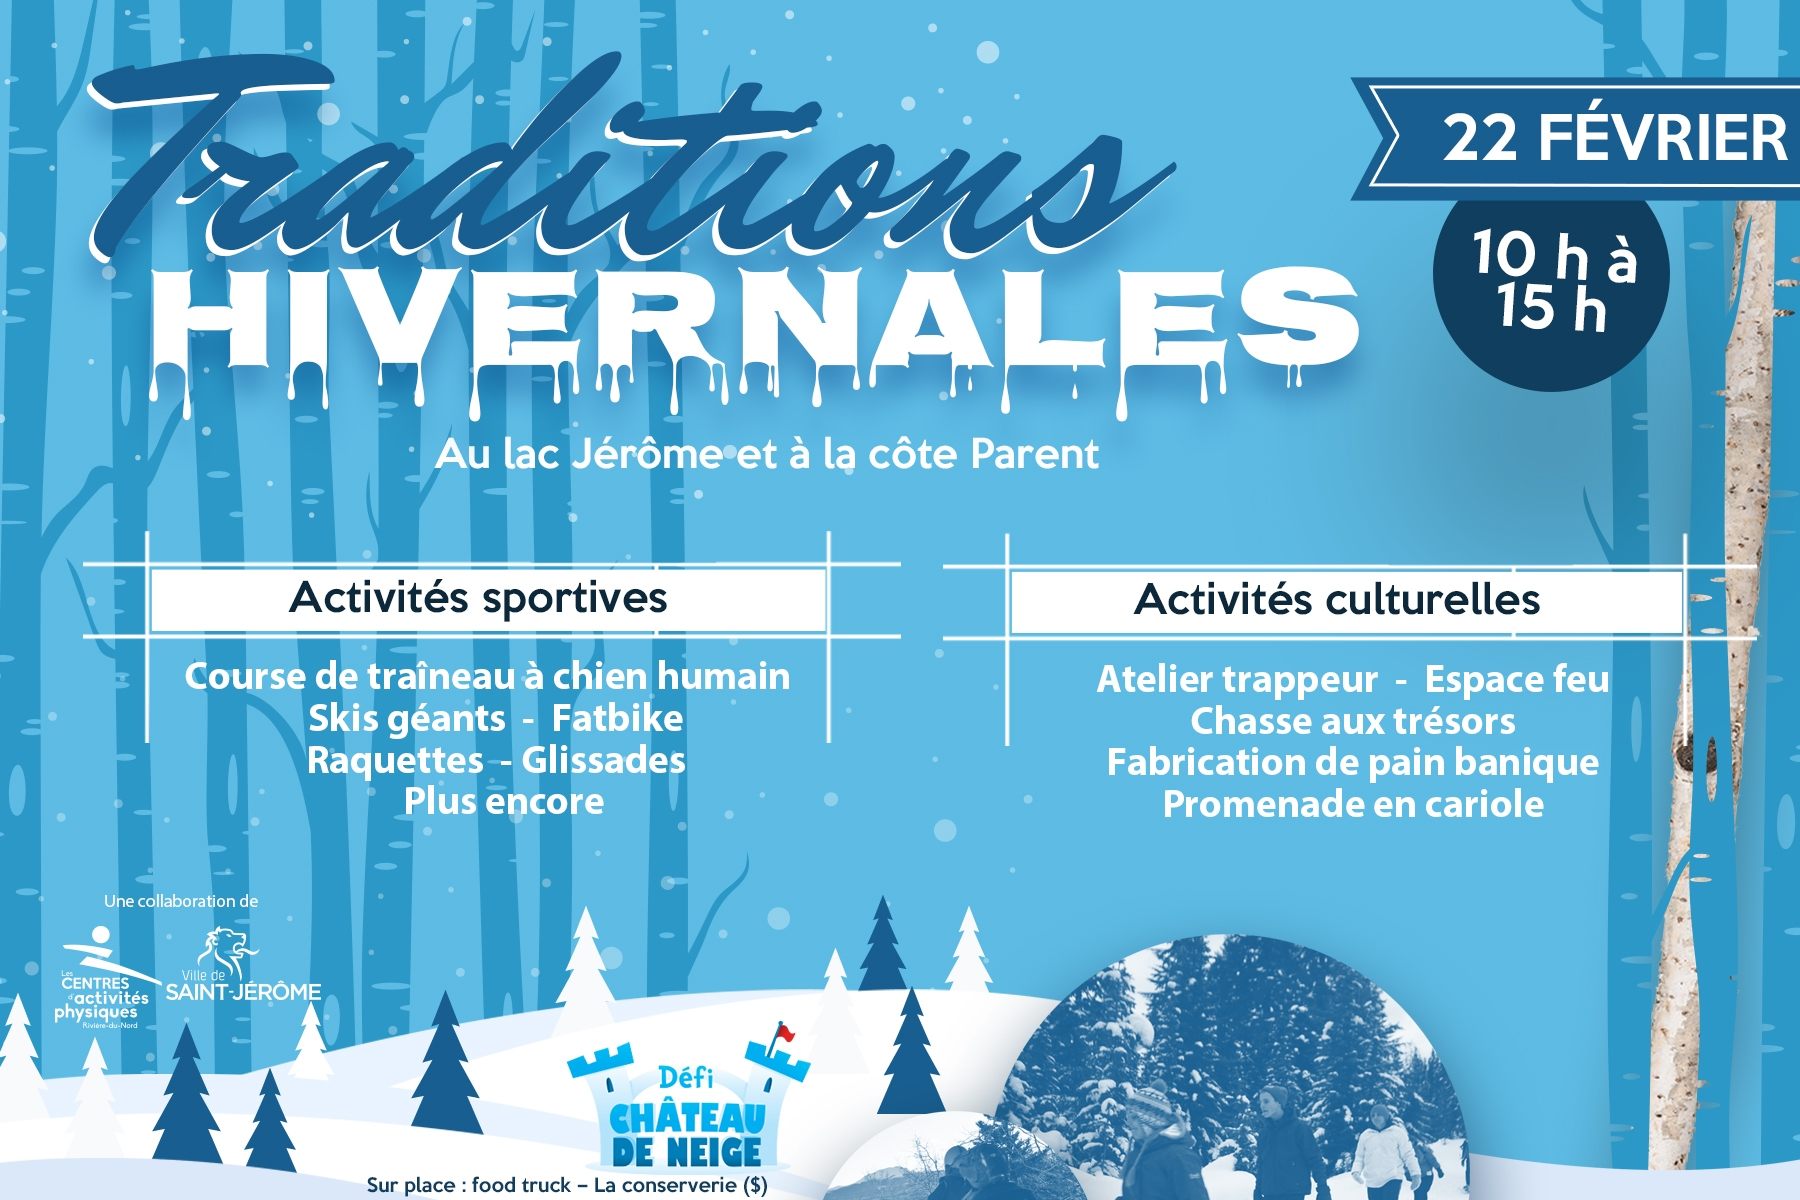 Traditions hivernales